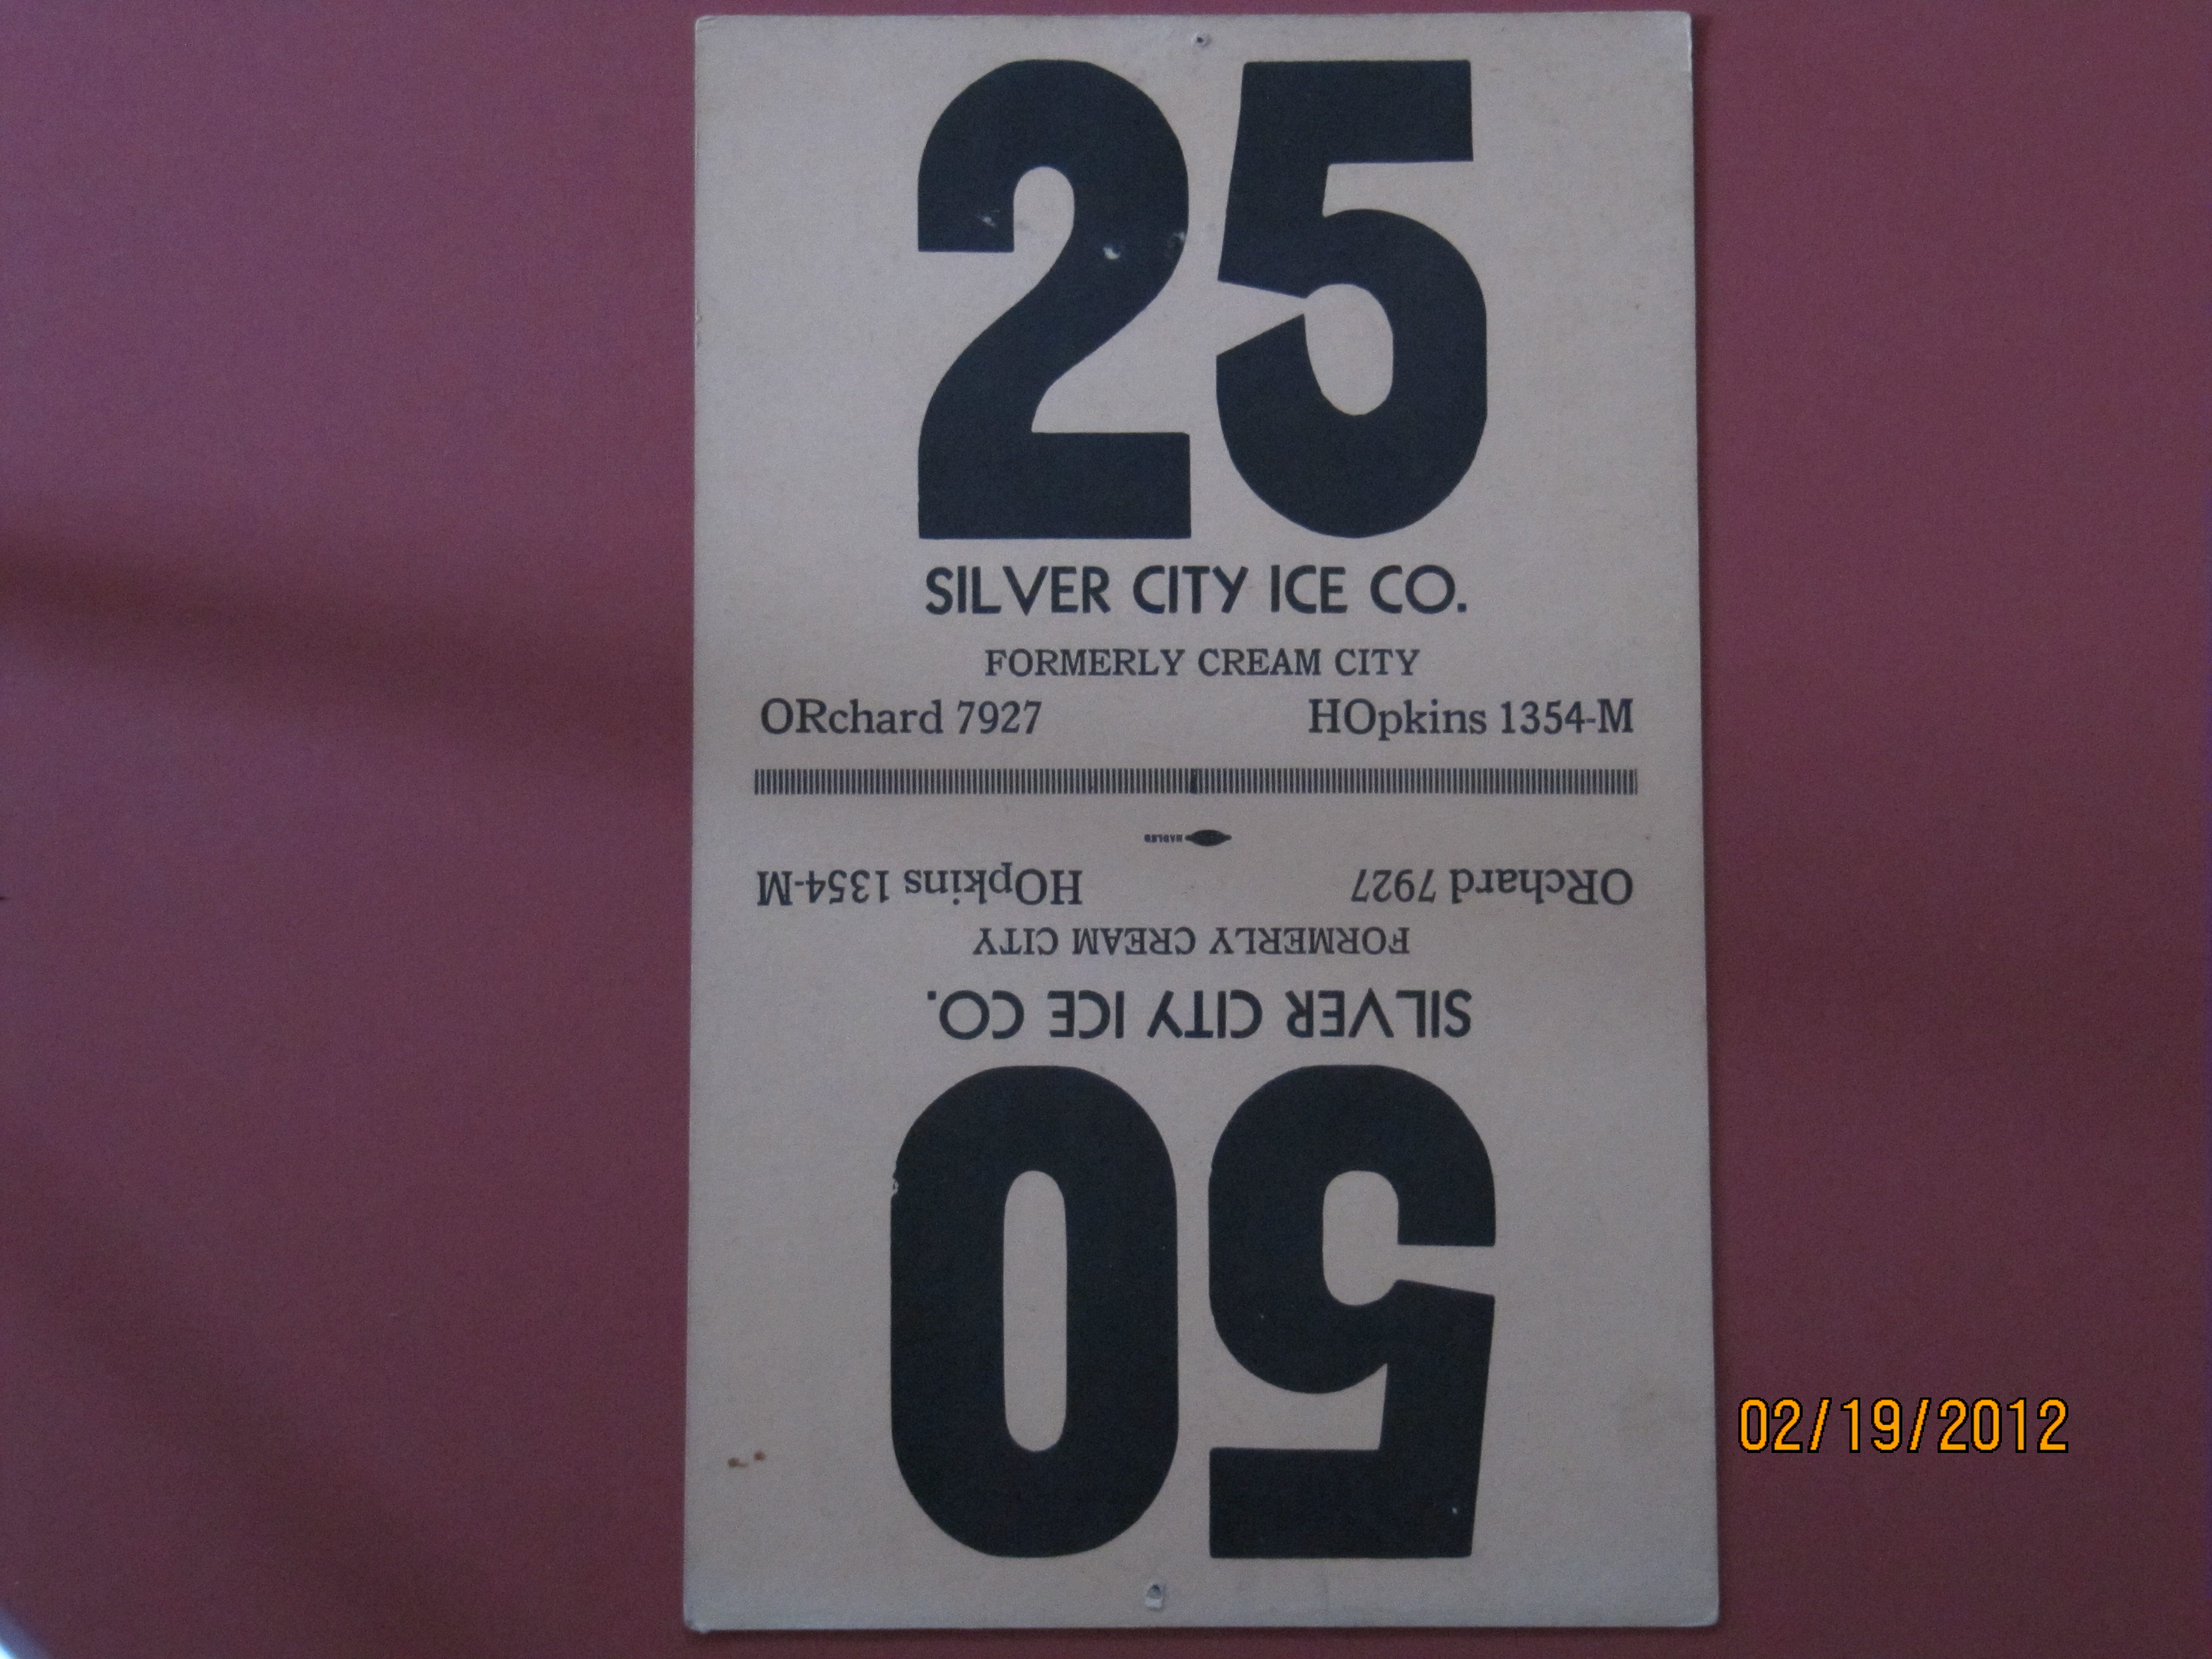 Silver City Ice Co.